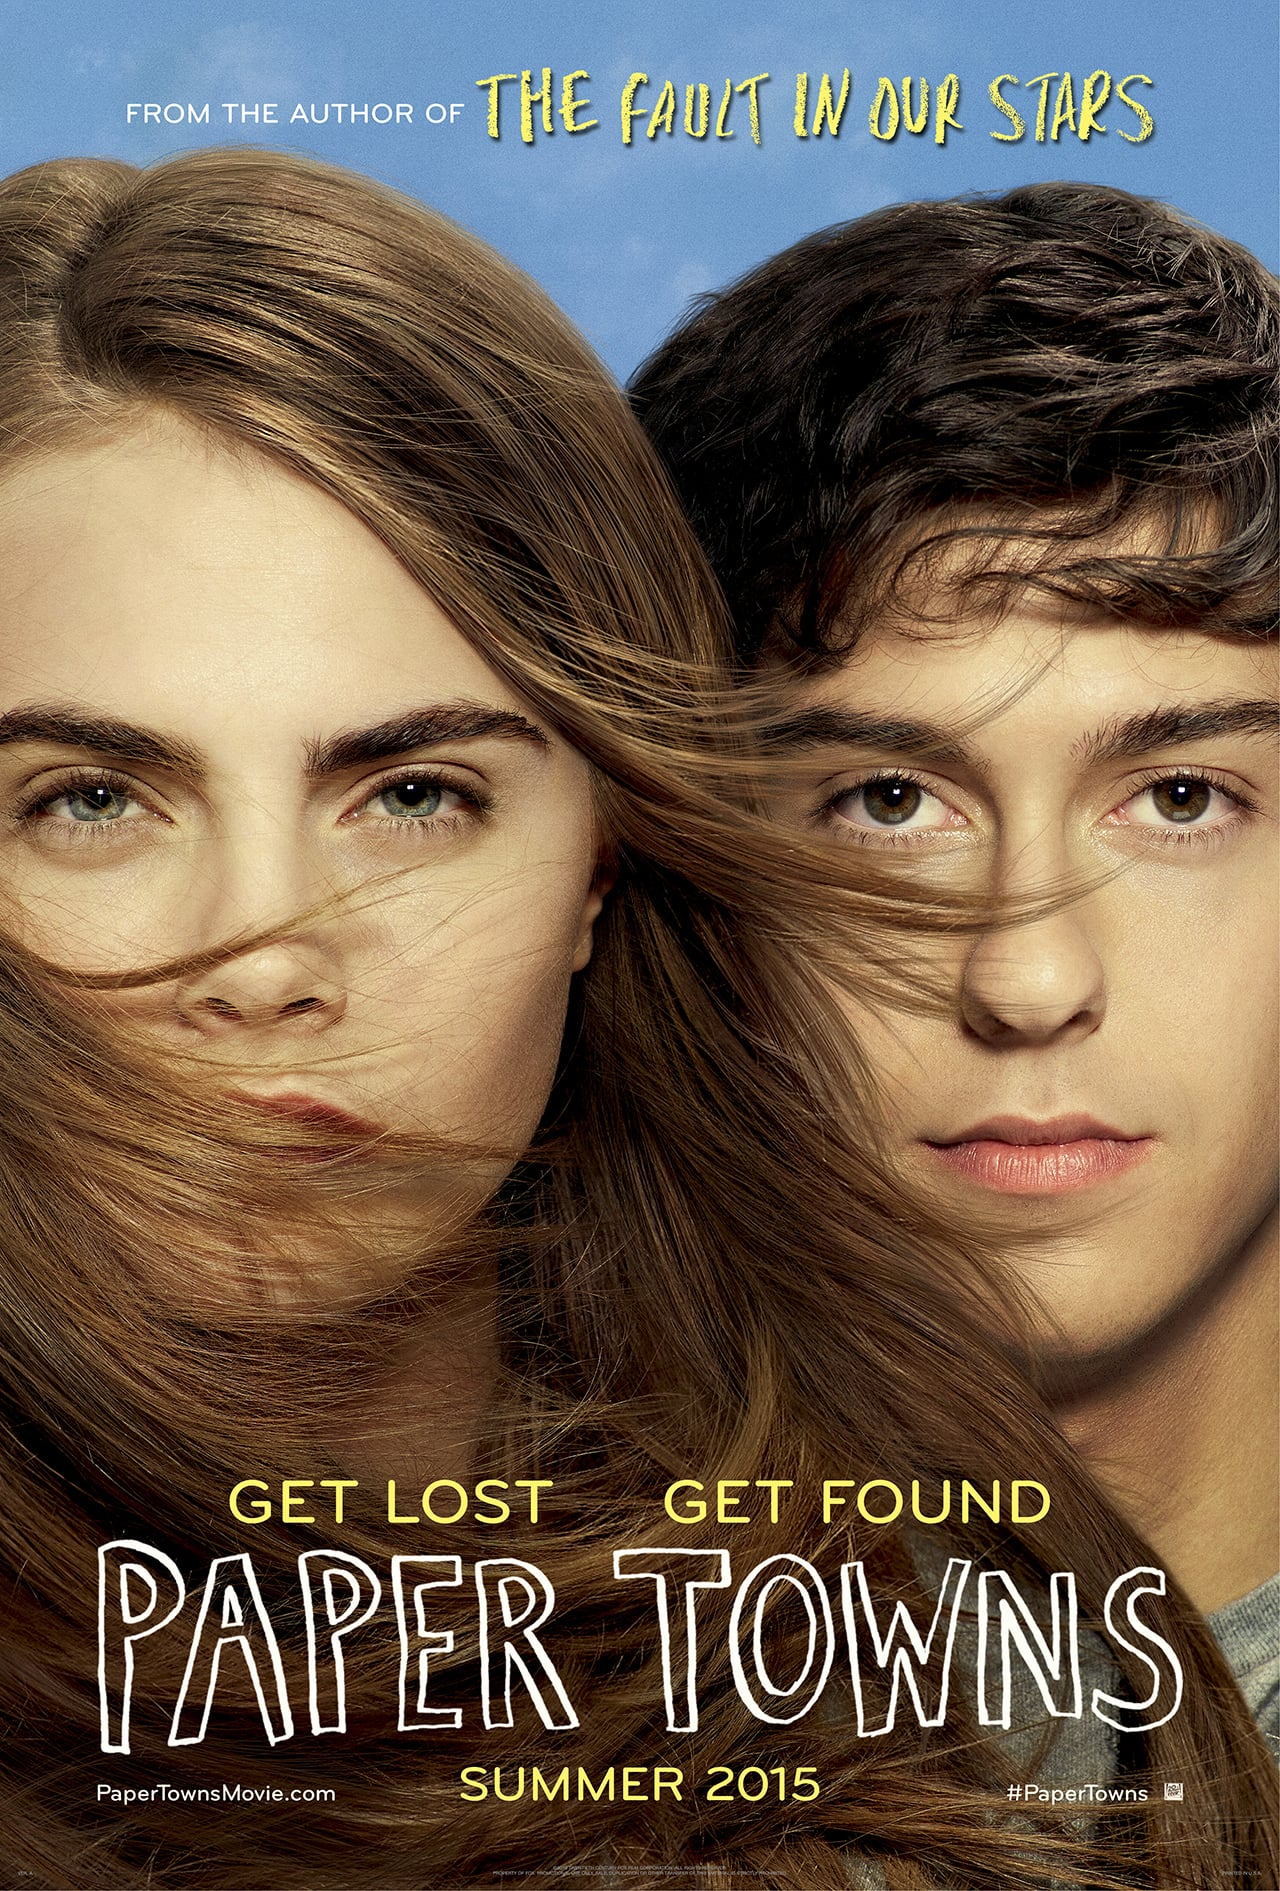 Paper towns movie in stores